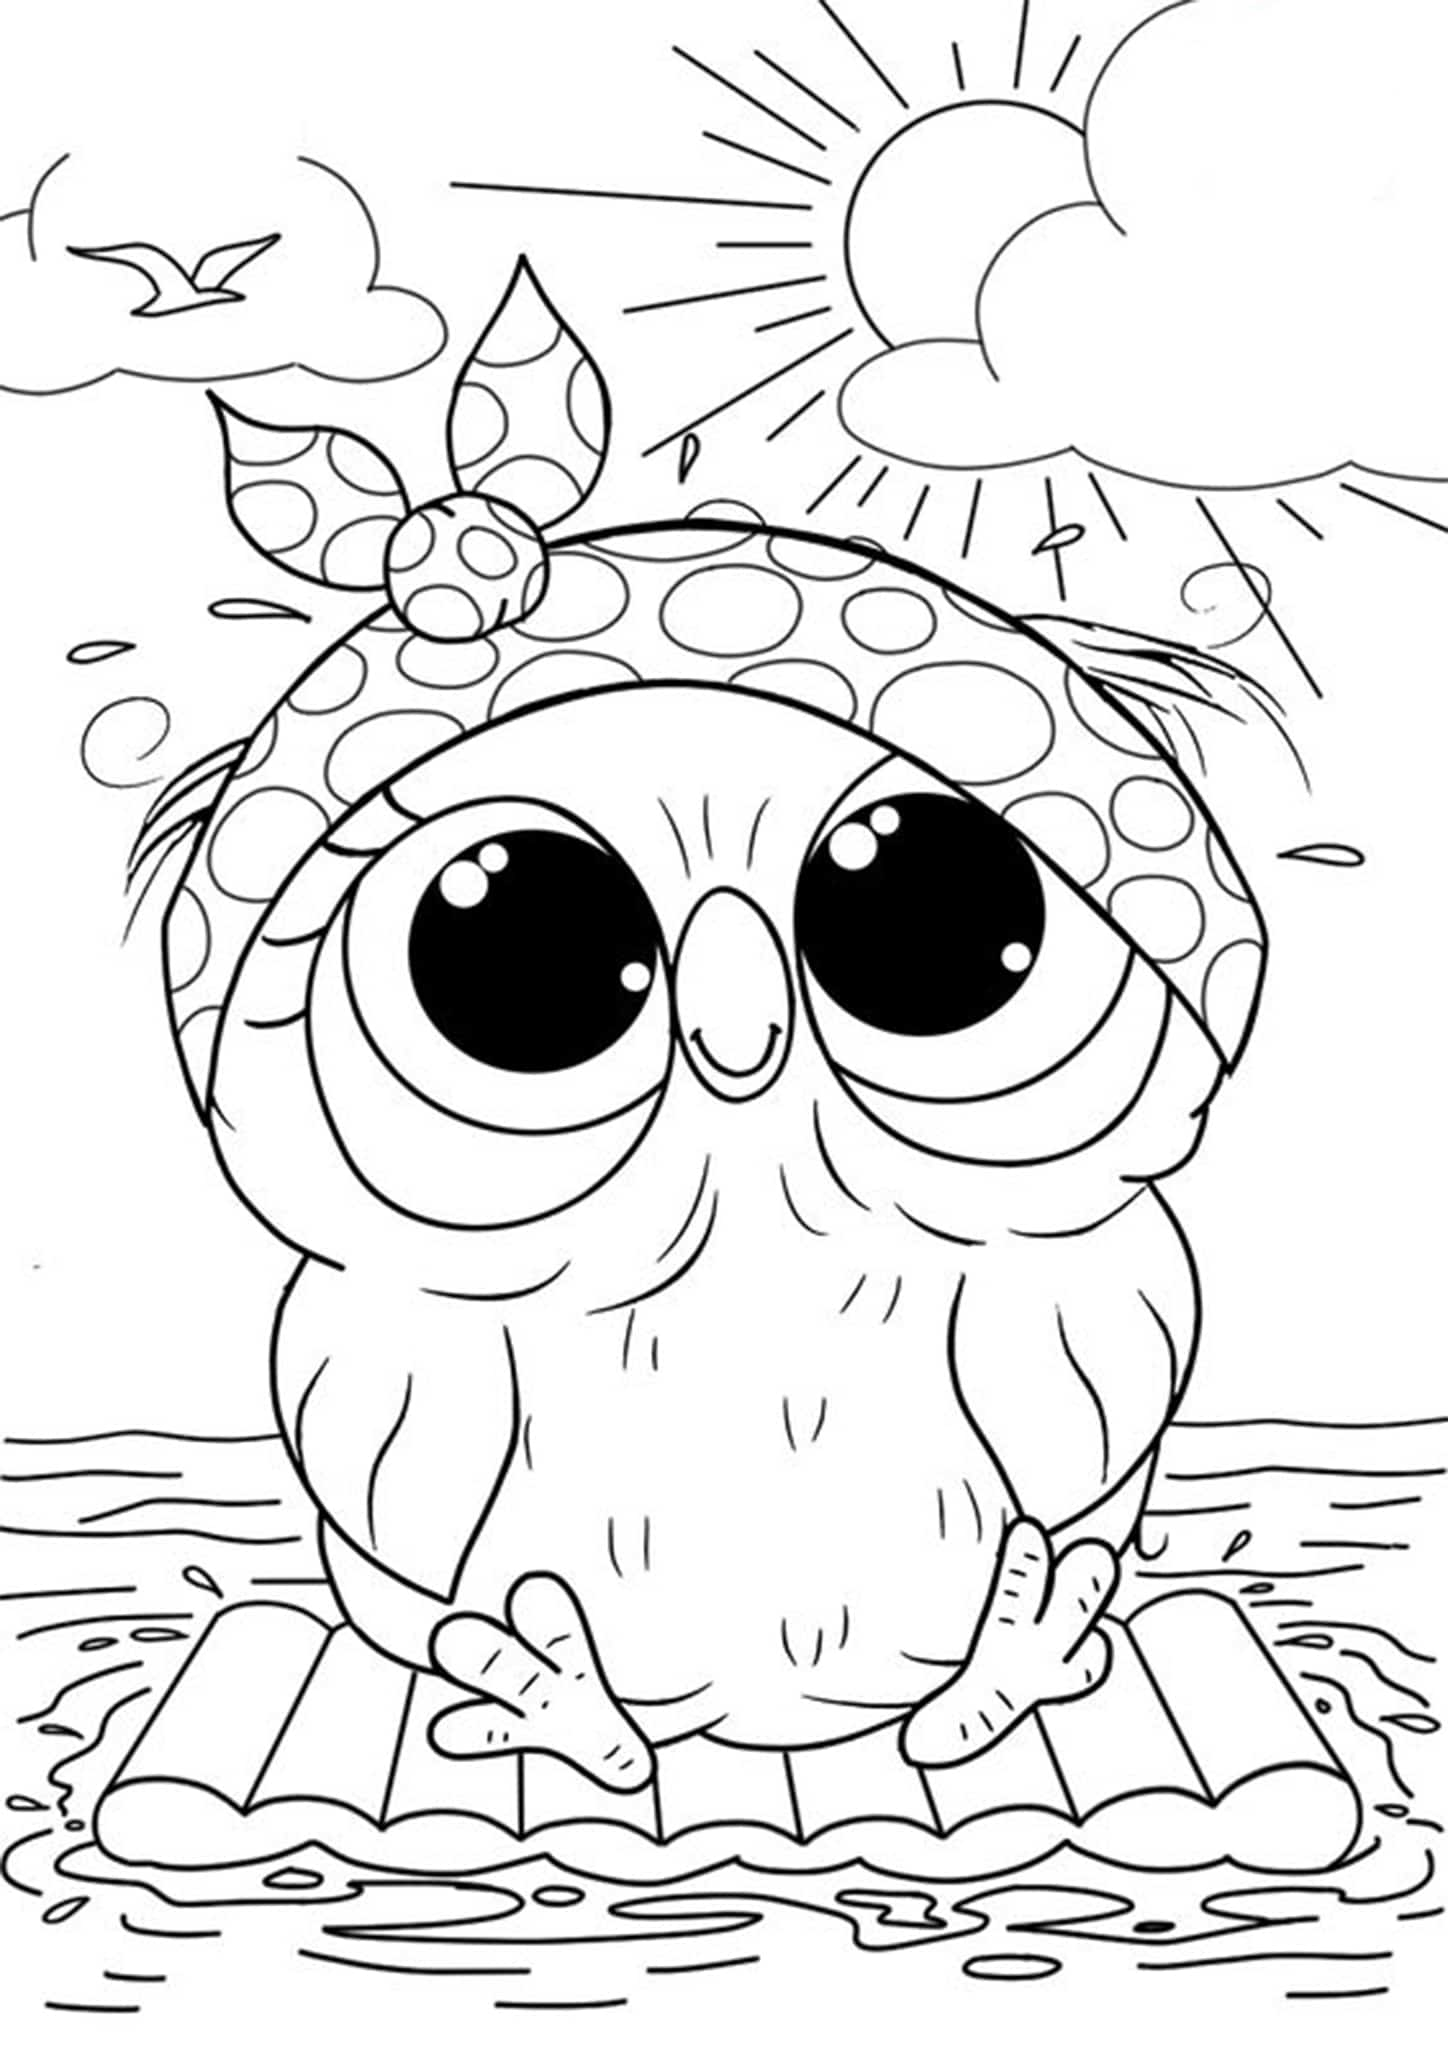 owl coloring picture owl coloring pages for adults free detailed owl coloring owl coloring picture